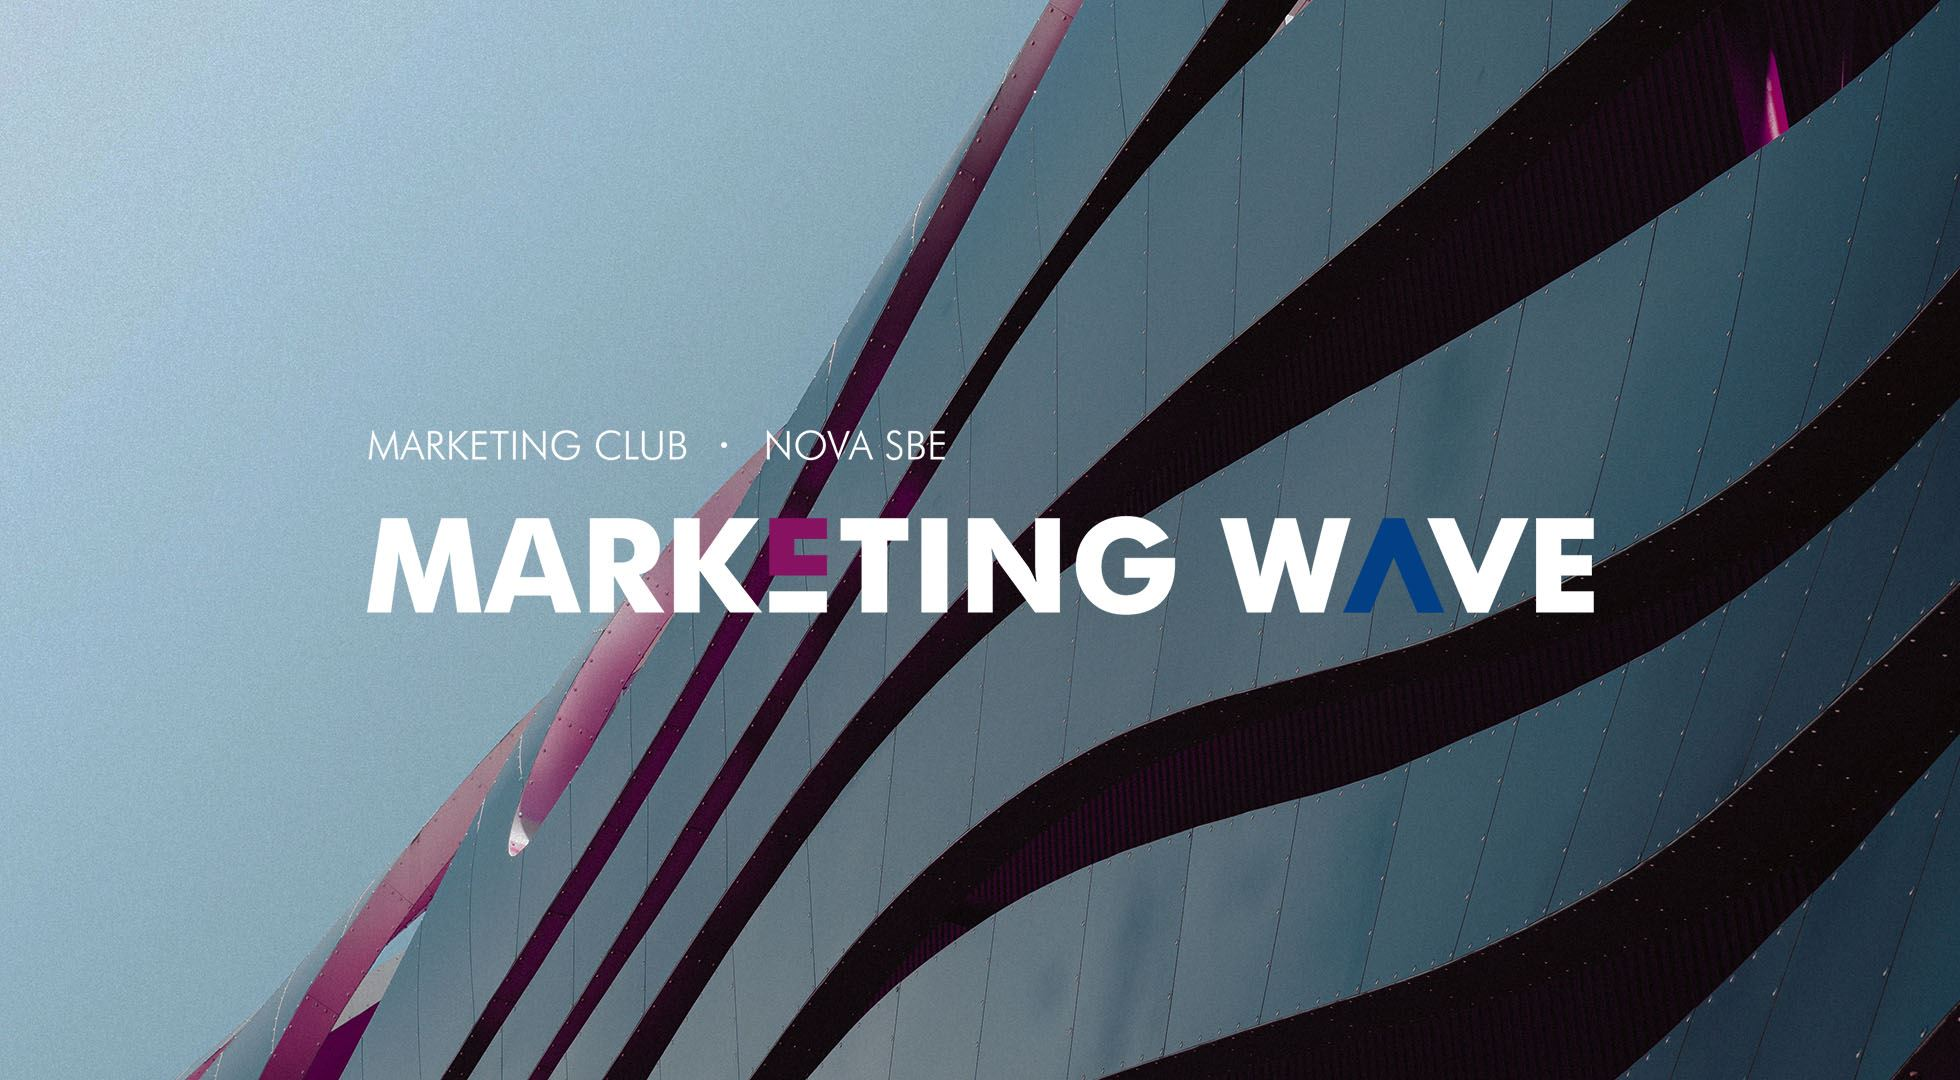 Marketing Wave 2020